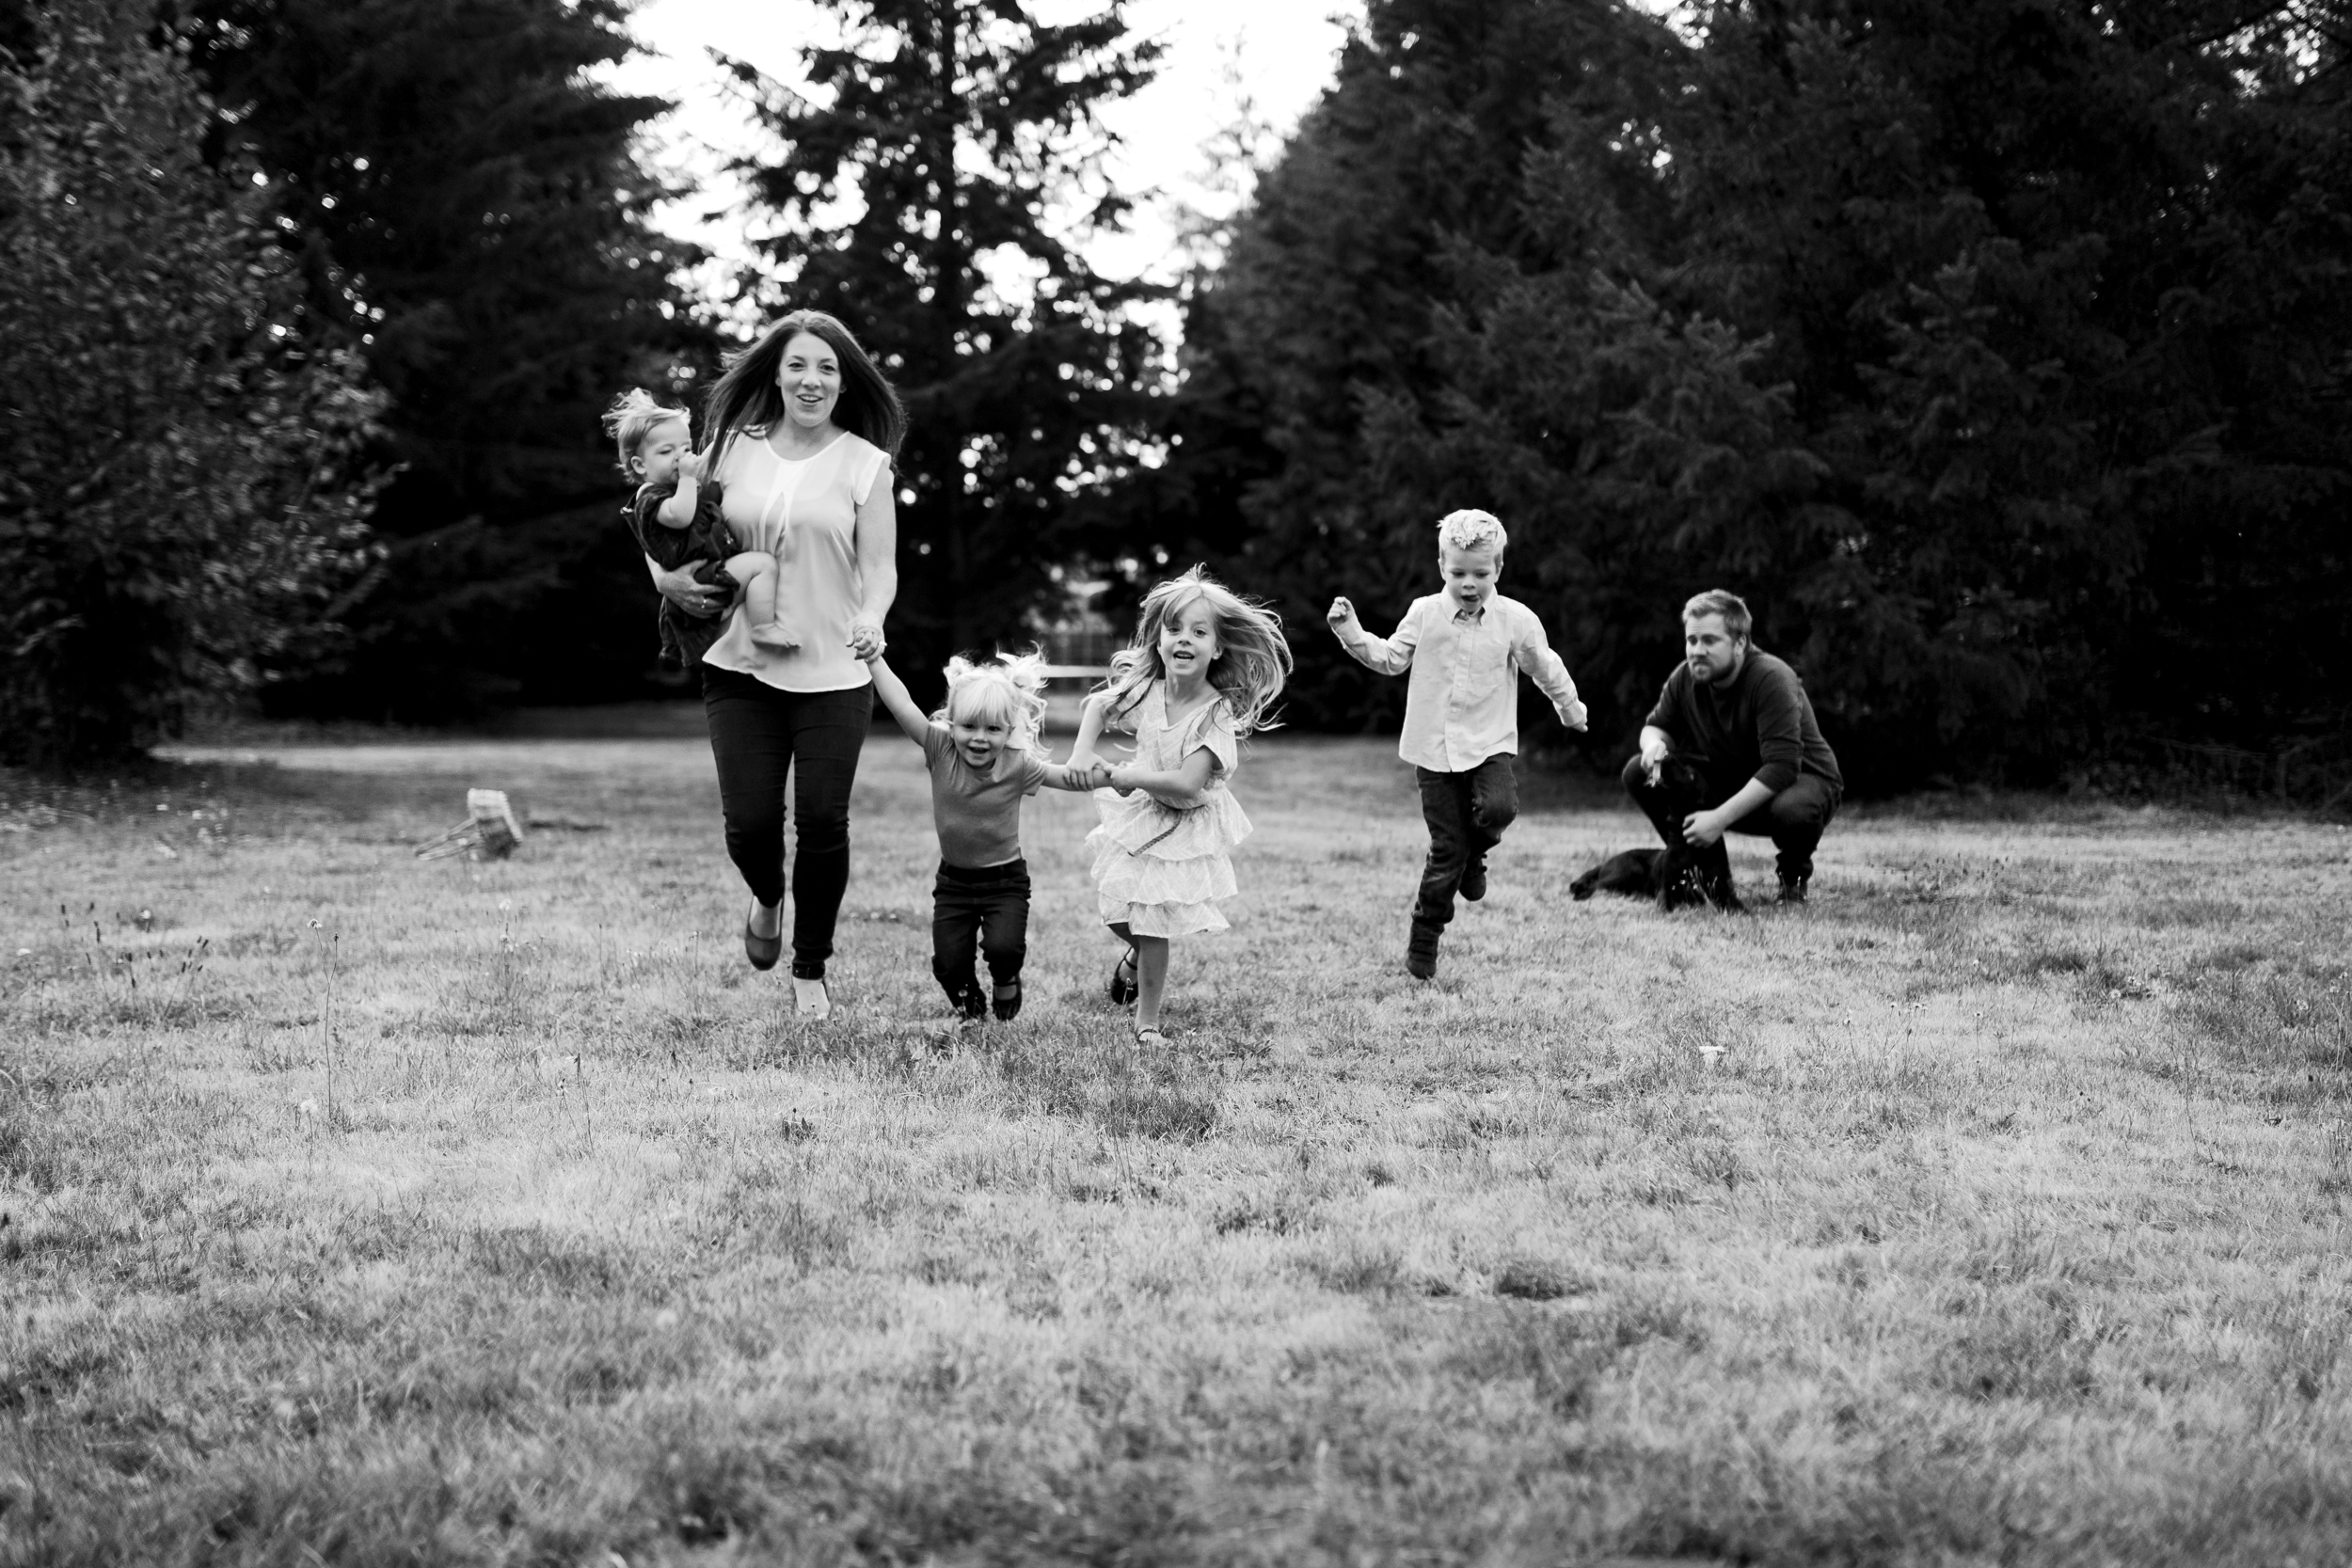 family running together towards the camera during a photo shoot